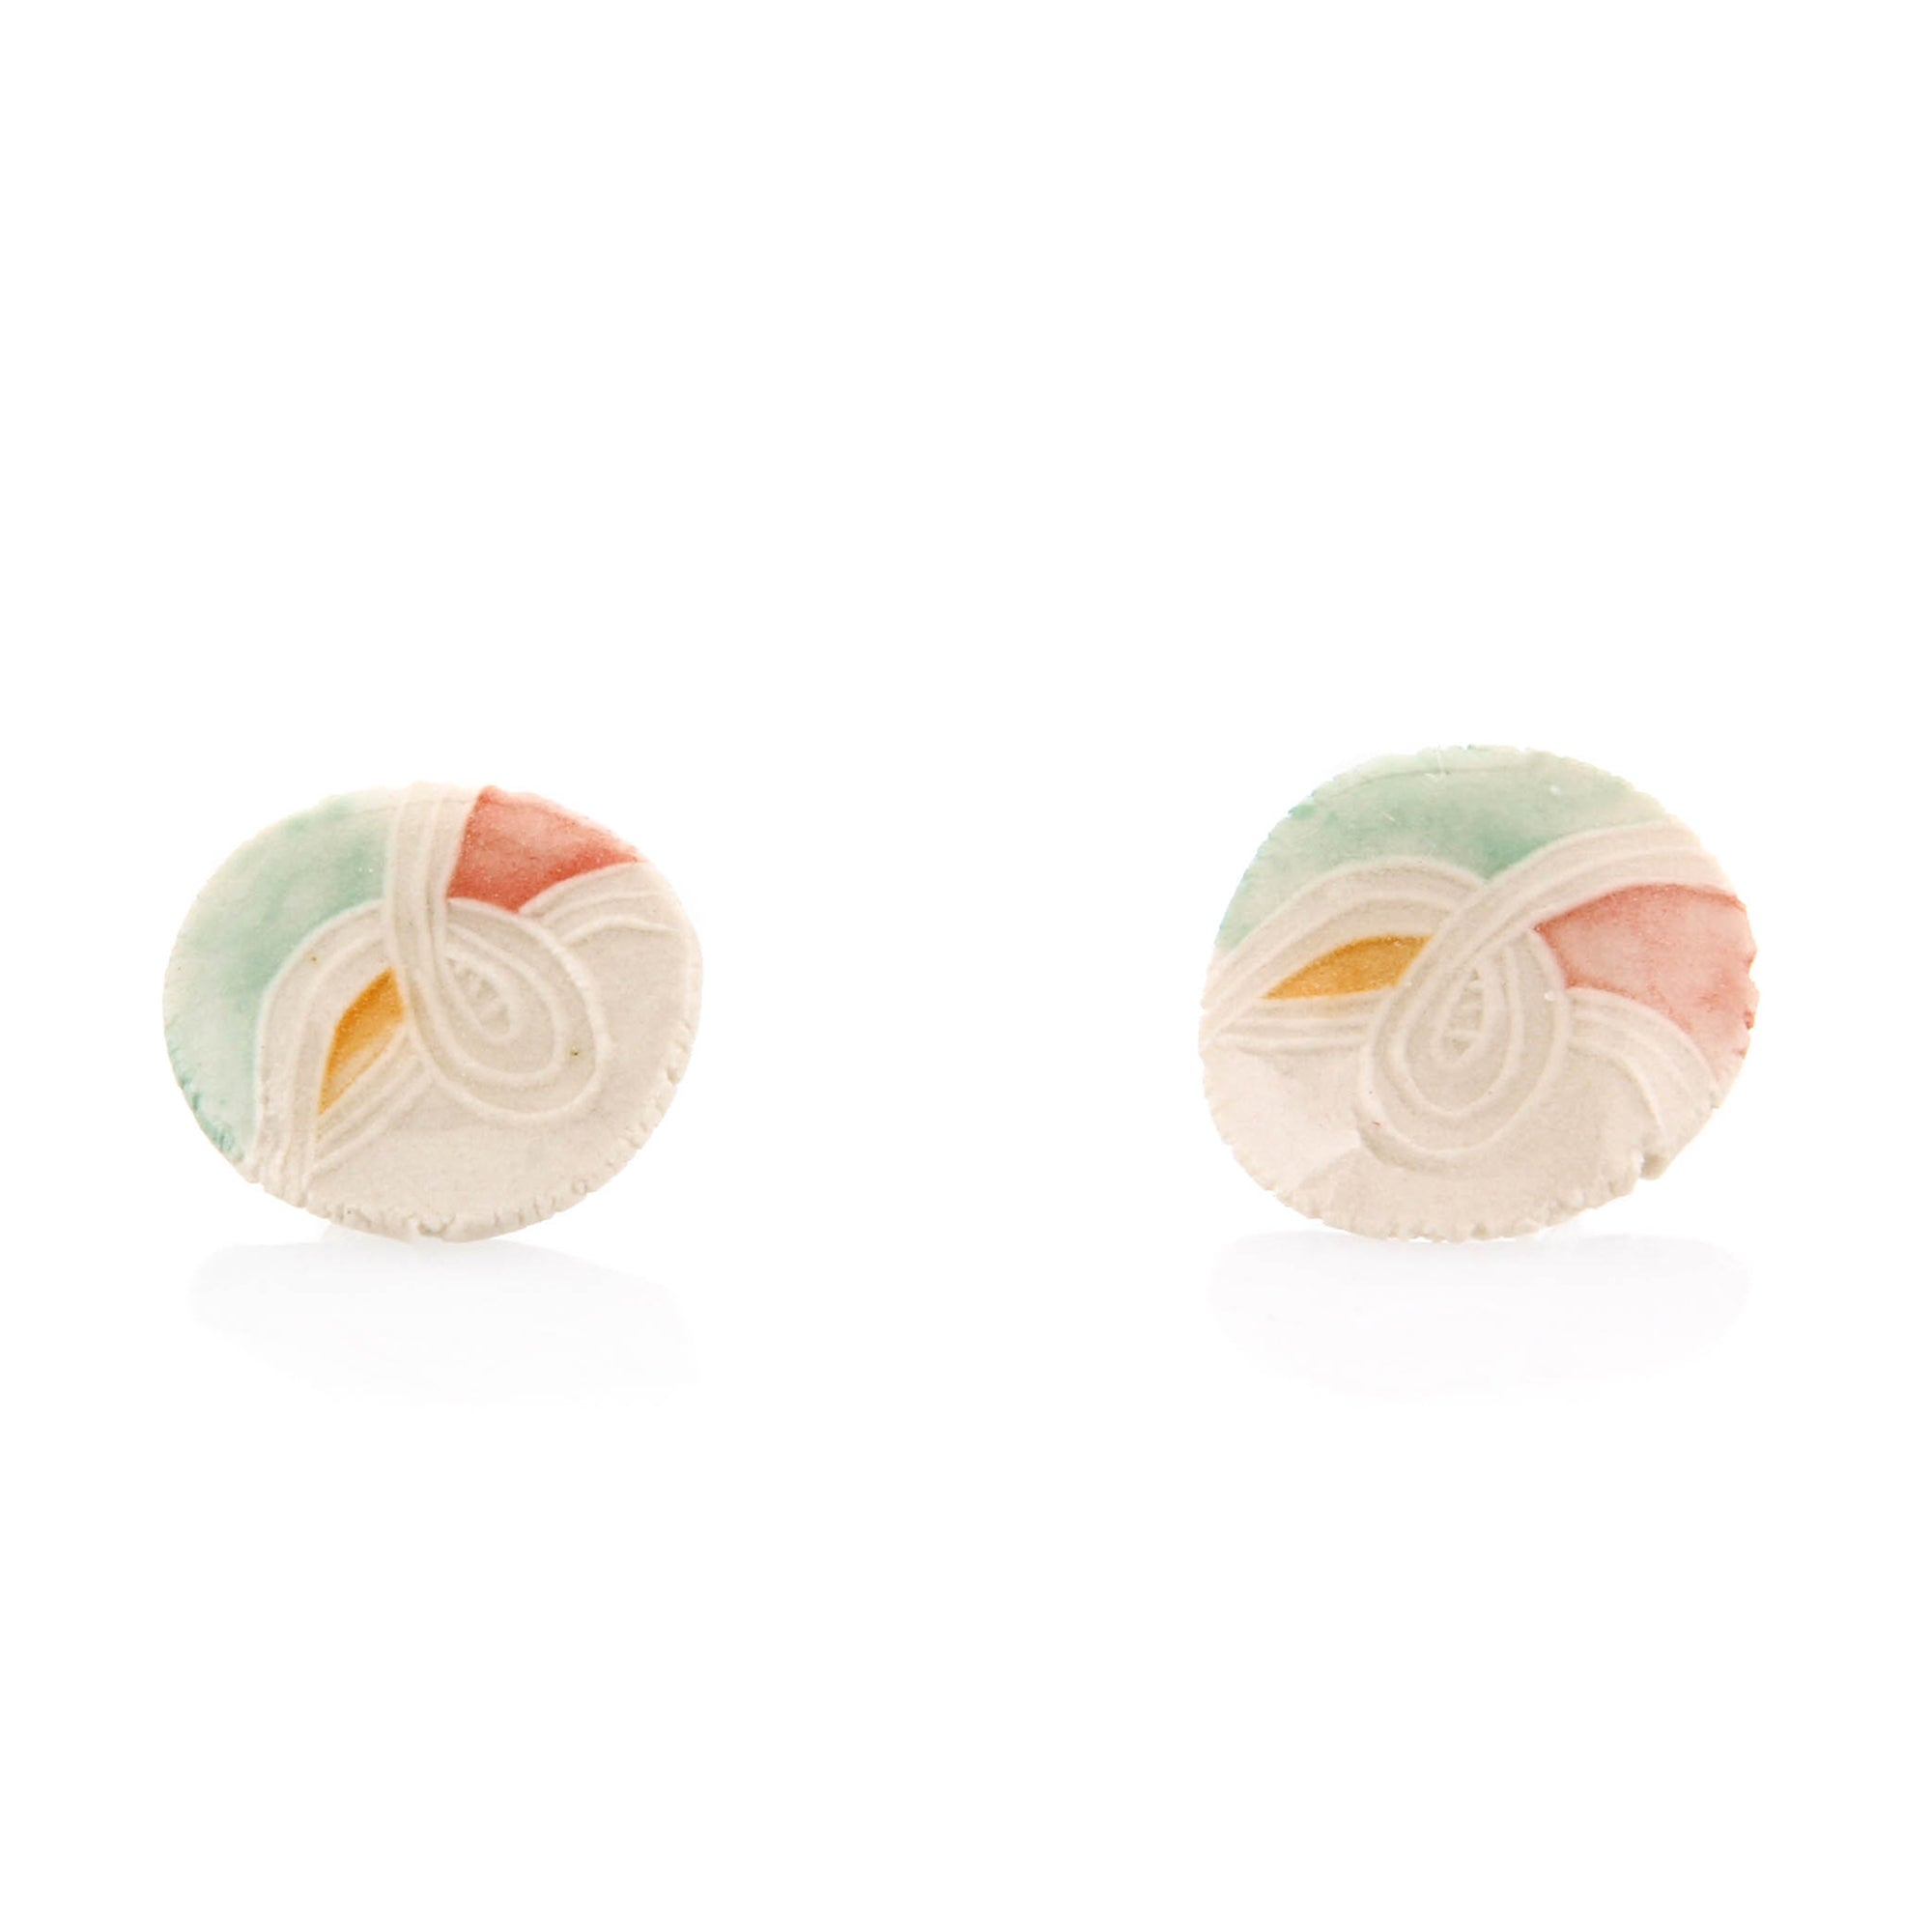 Carole Epp, Porcelain Stud Earrings